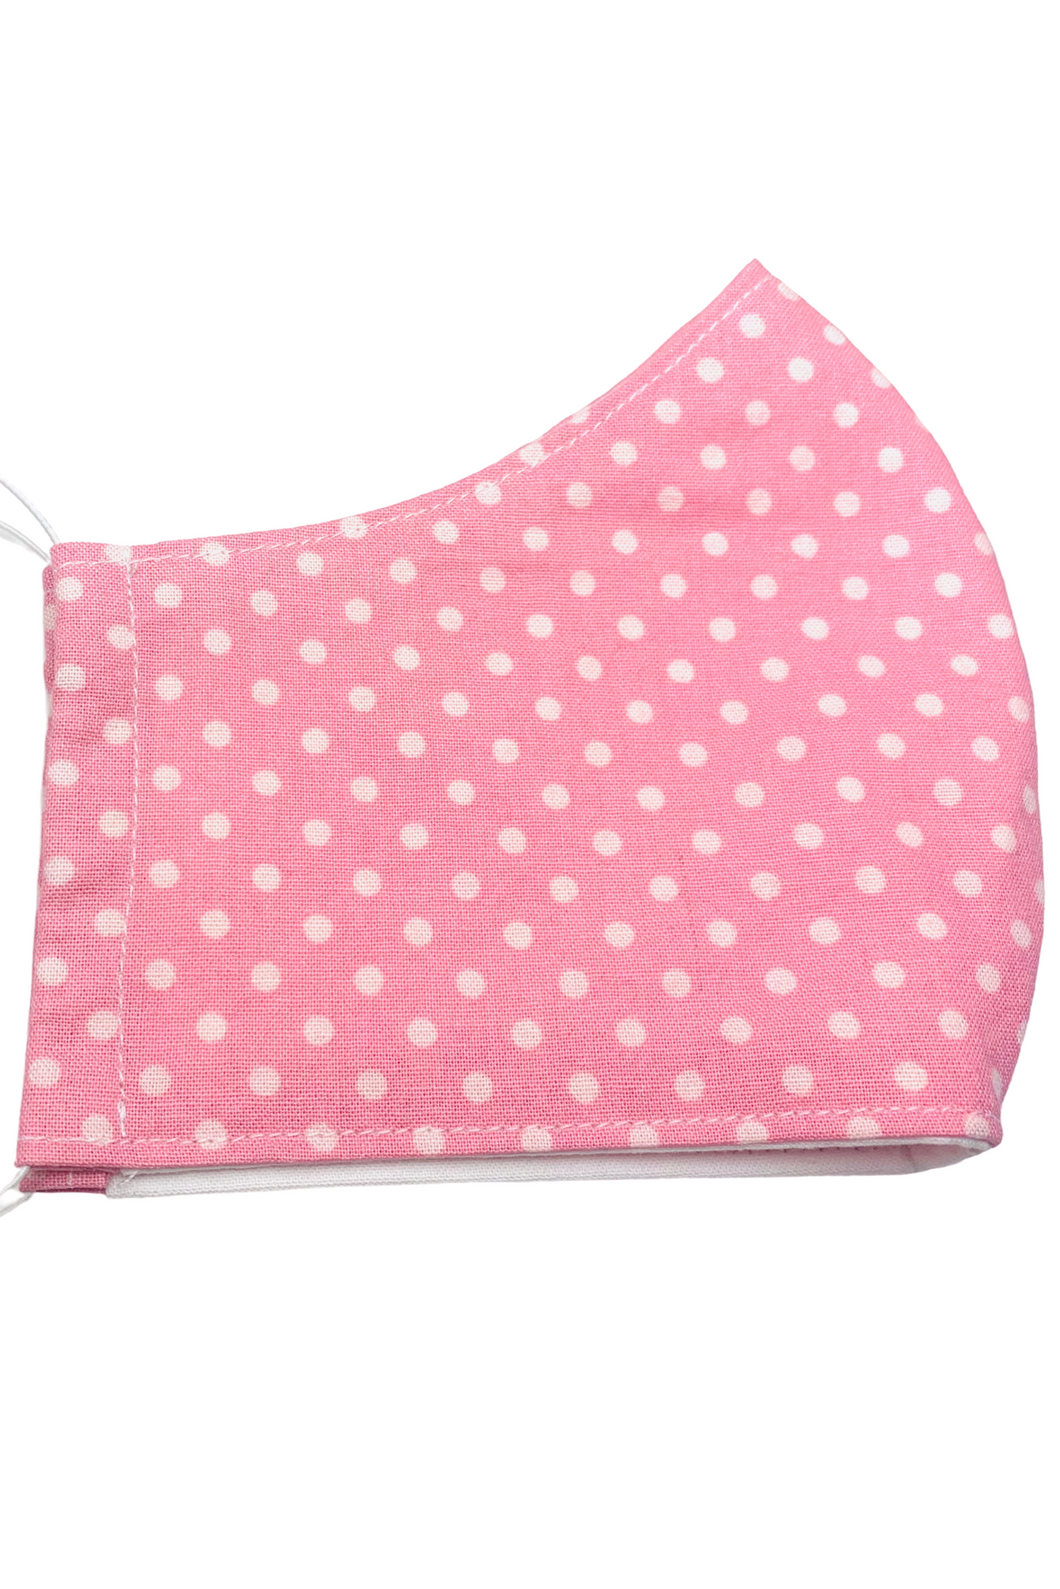 Pink and White Polka Dot Kids Face Mask with Filter